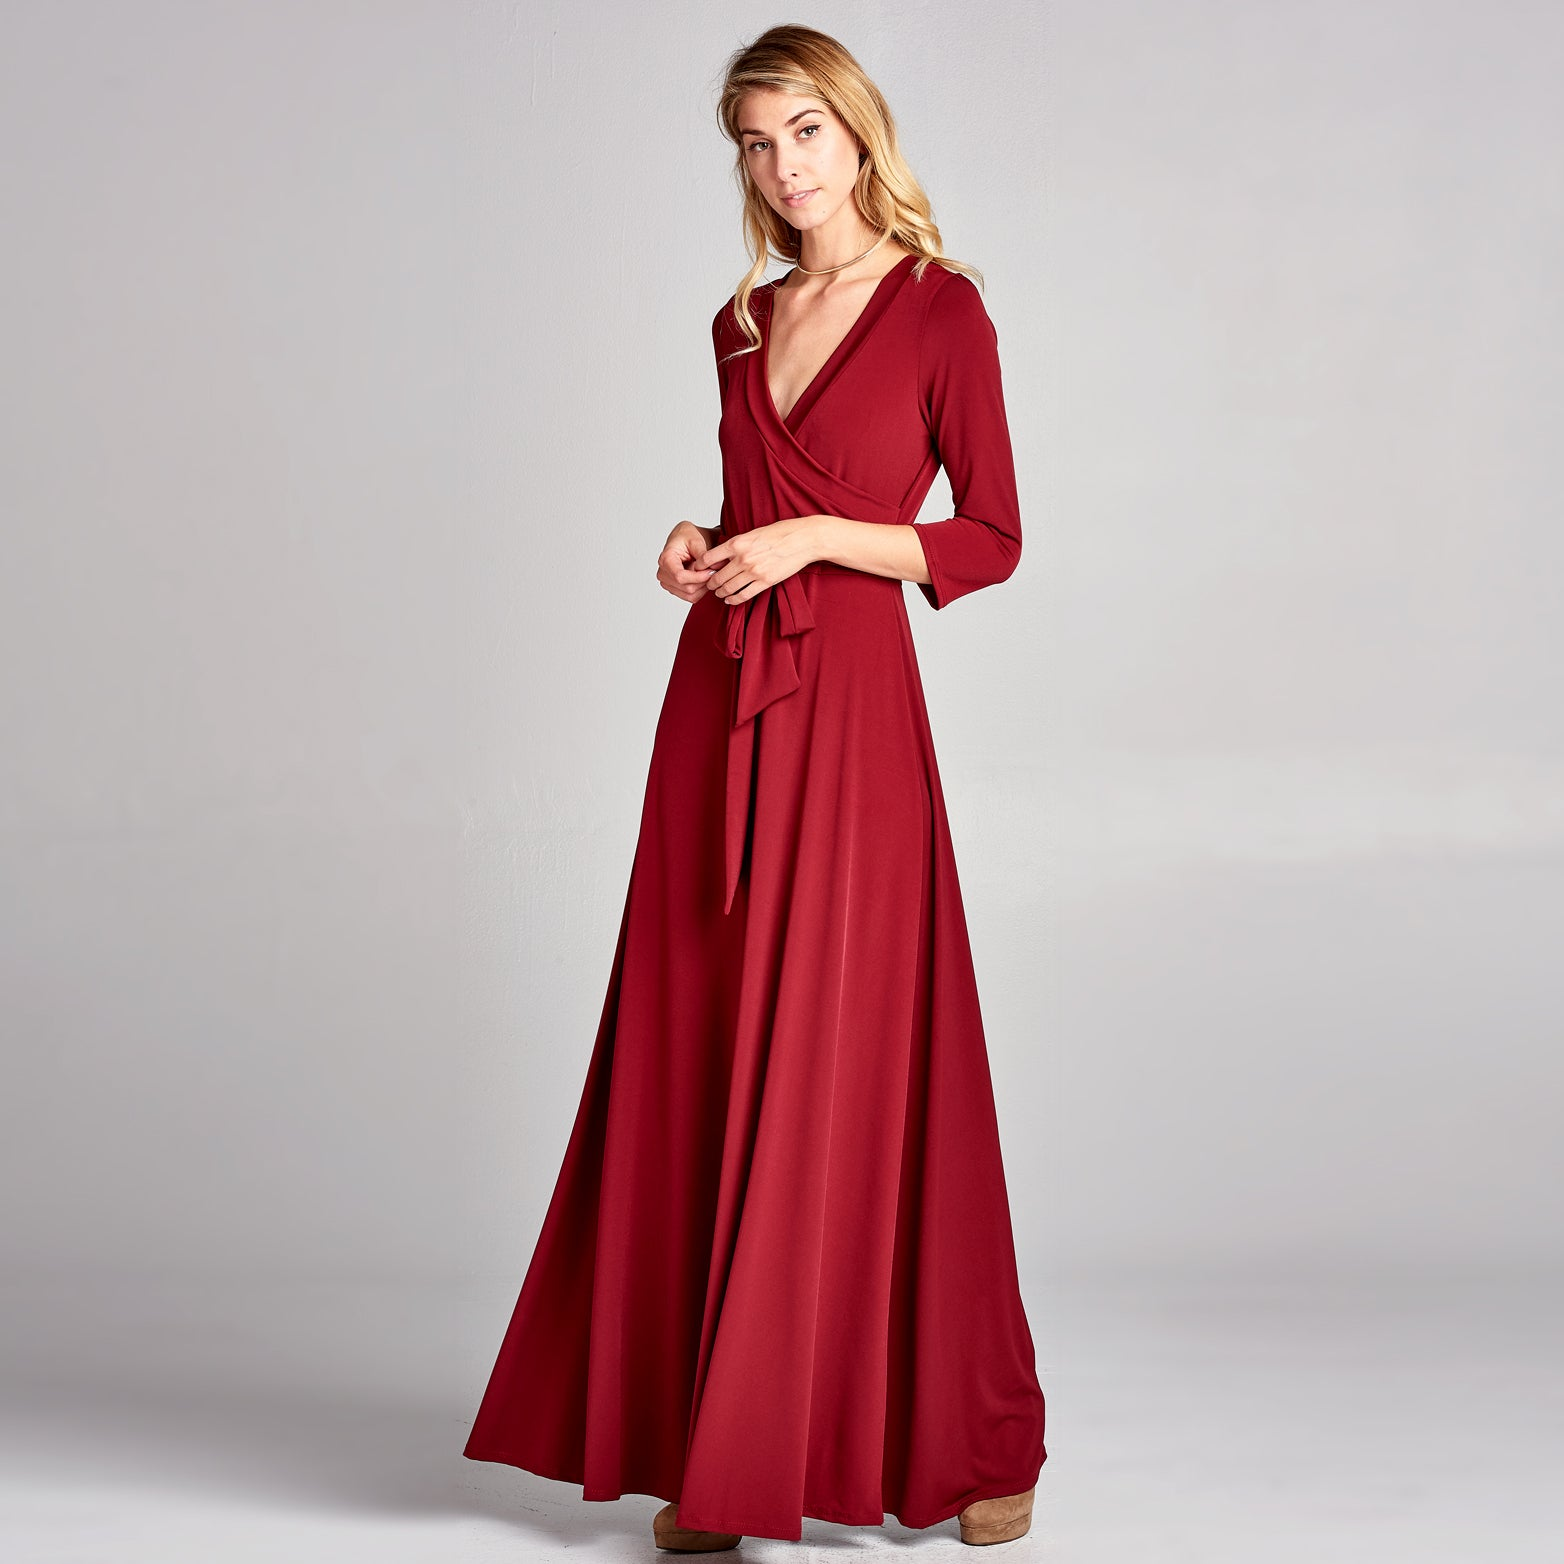 Sweetheart Venechia Wrap Dress